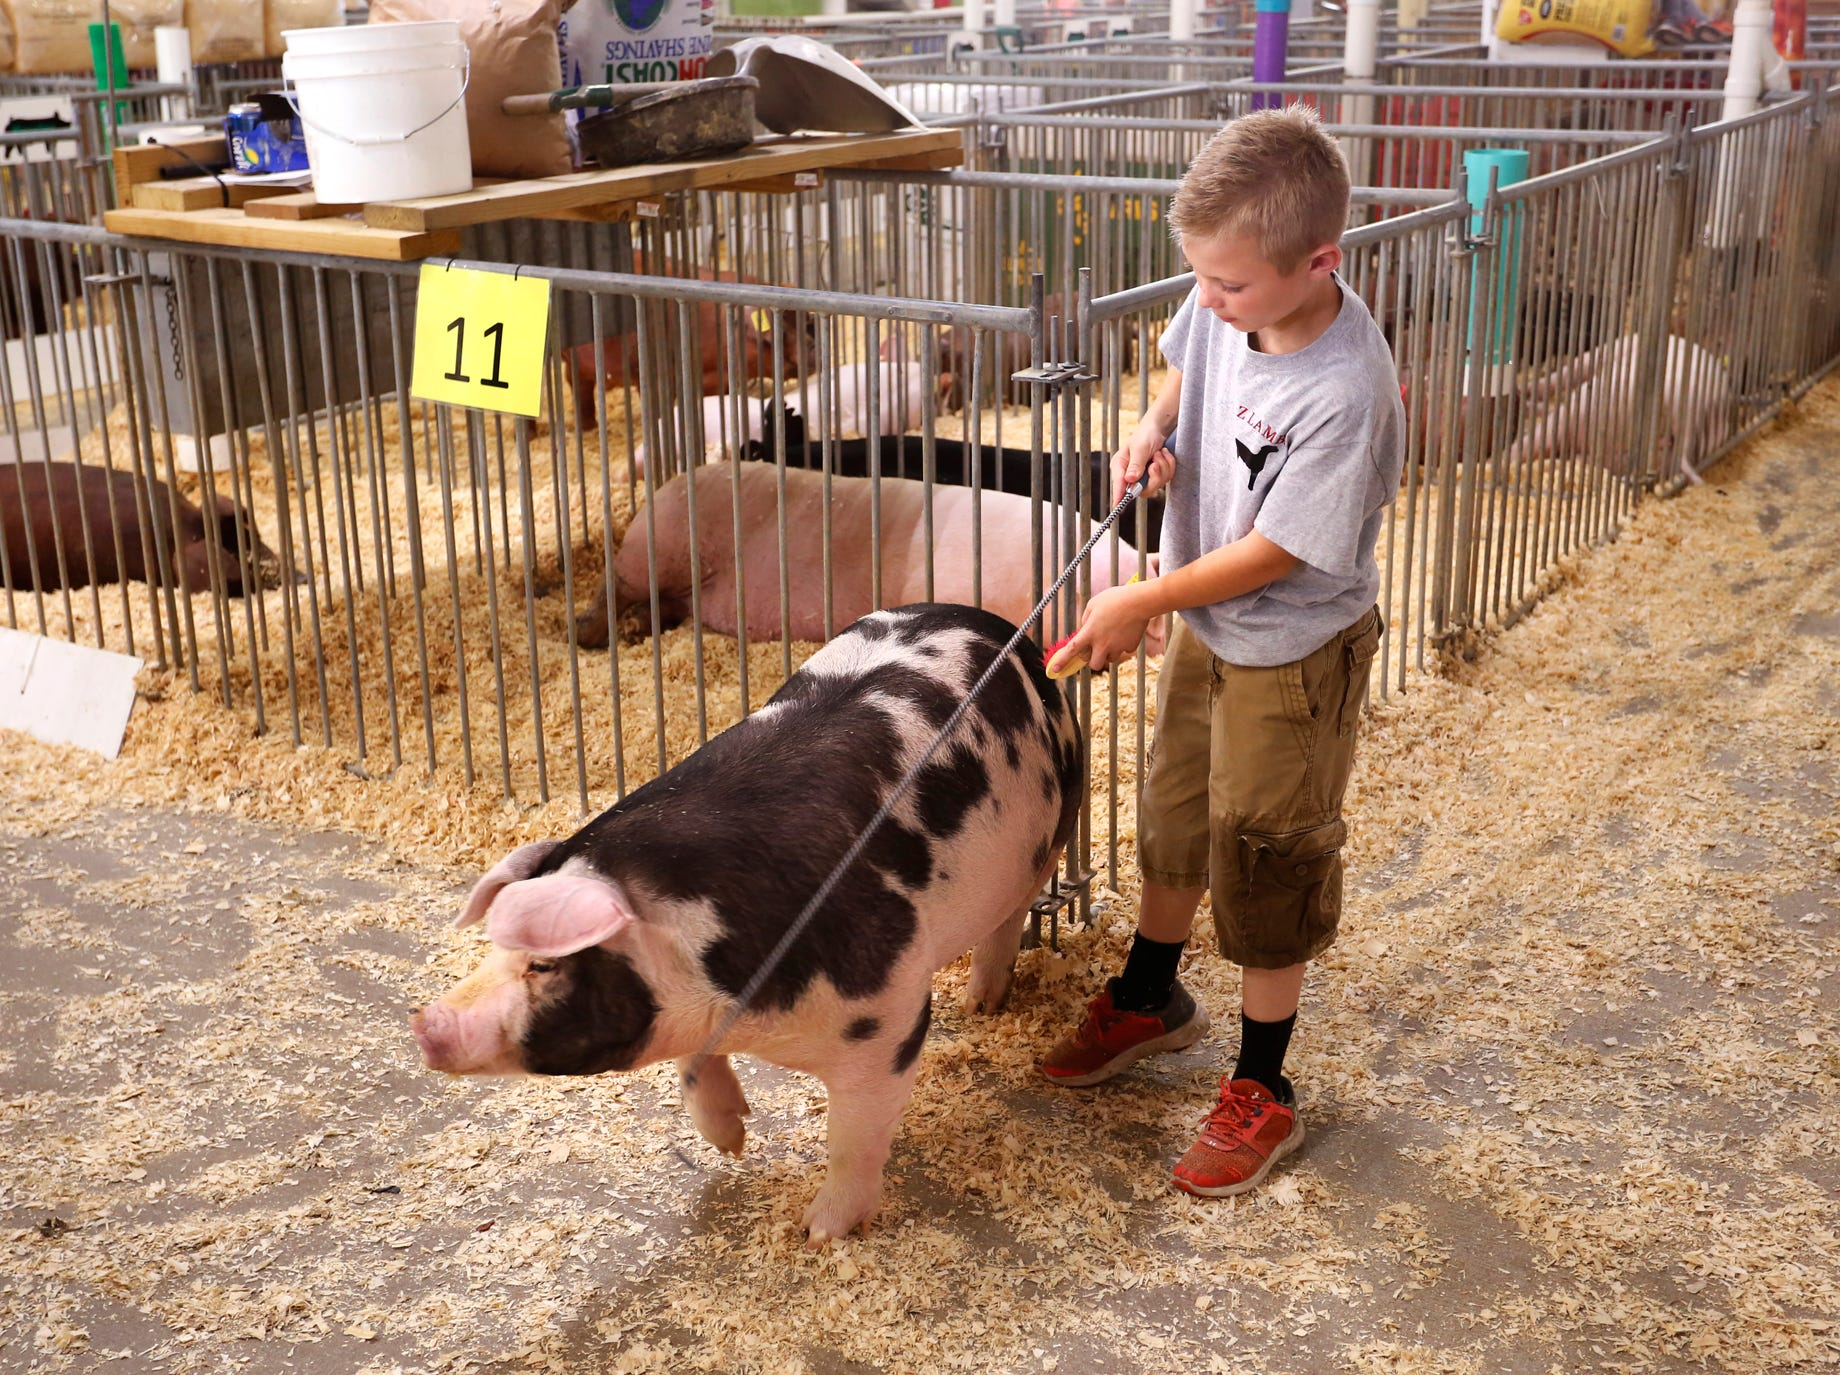 Eli Moseley, 10, directs his spot variety pig through the swine barn at the Tippecanoe County 4-H Fair Monday, July 23, 2018, in Lafayette. Moseley will be a fifth grade student at Sugar Creek Elementary in Montgomery County in the fall.